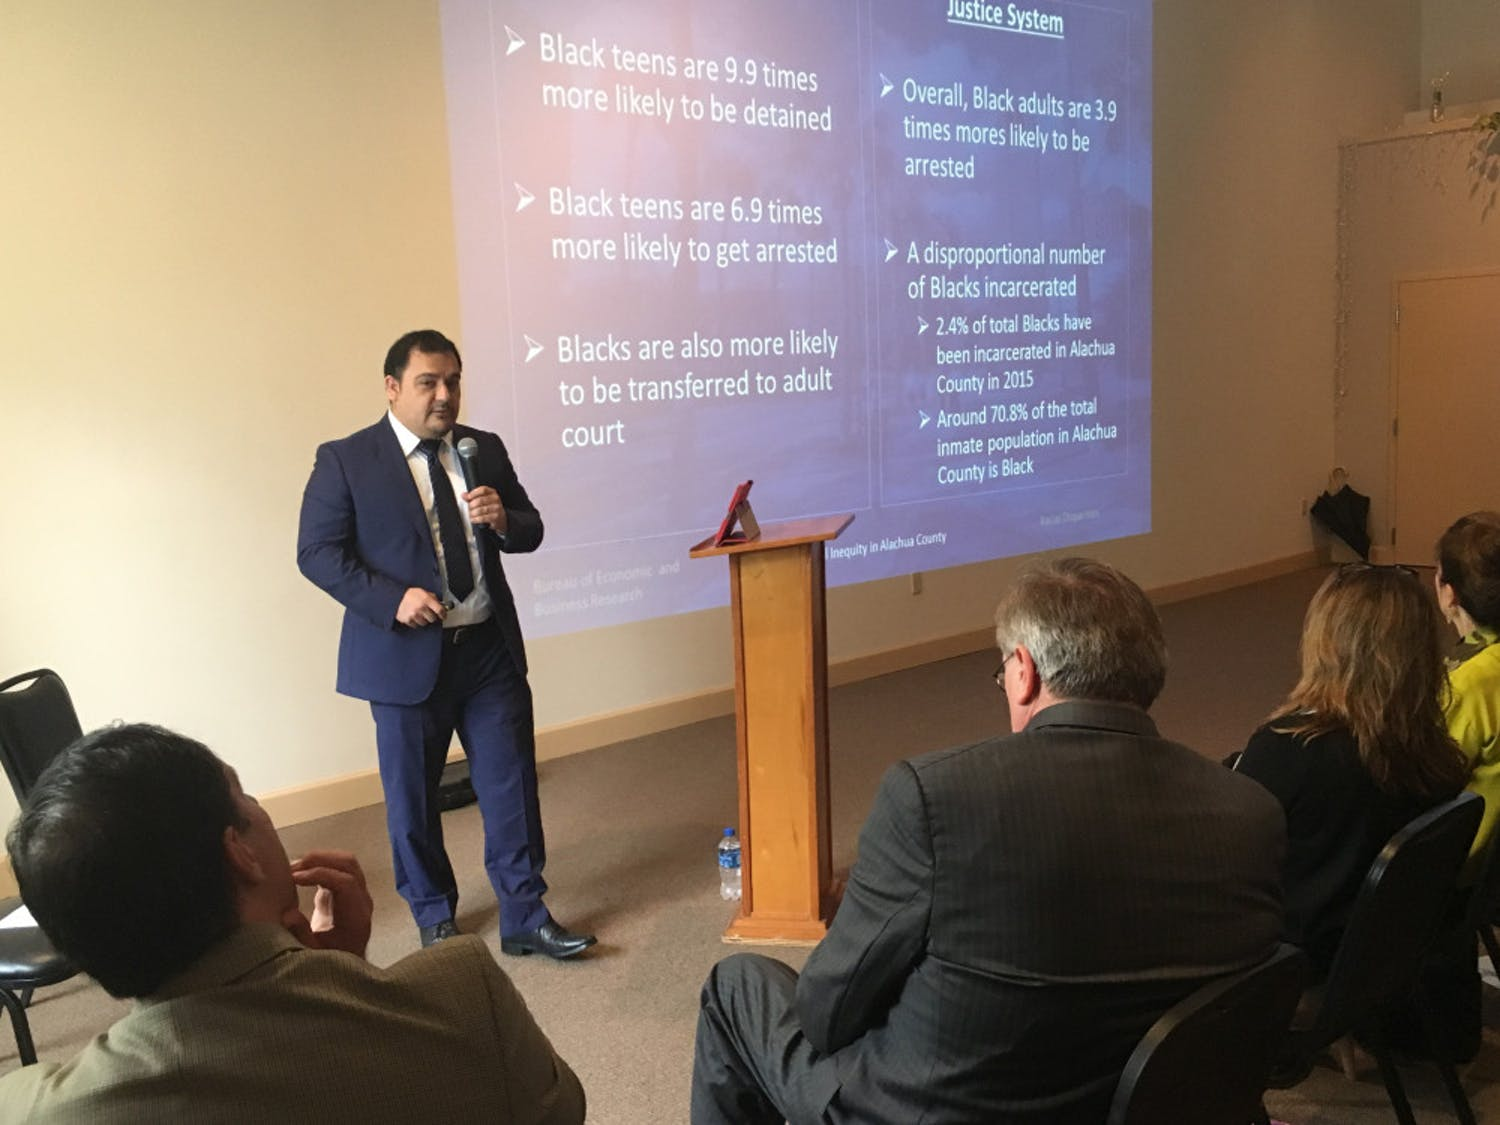 UF assistant professor Hector Hugo Sandoval Gutierrez presents data on racial inequity within the county to an audience of more than 200 Friday afternoon at the Mt. Moriah Missionary Baptist Church, located at 718 SE 11th St.